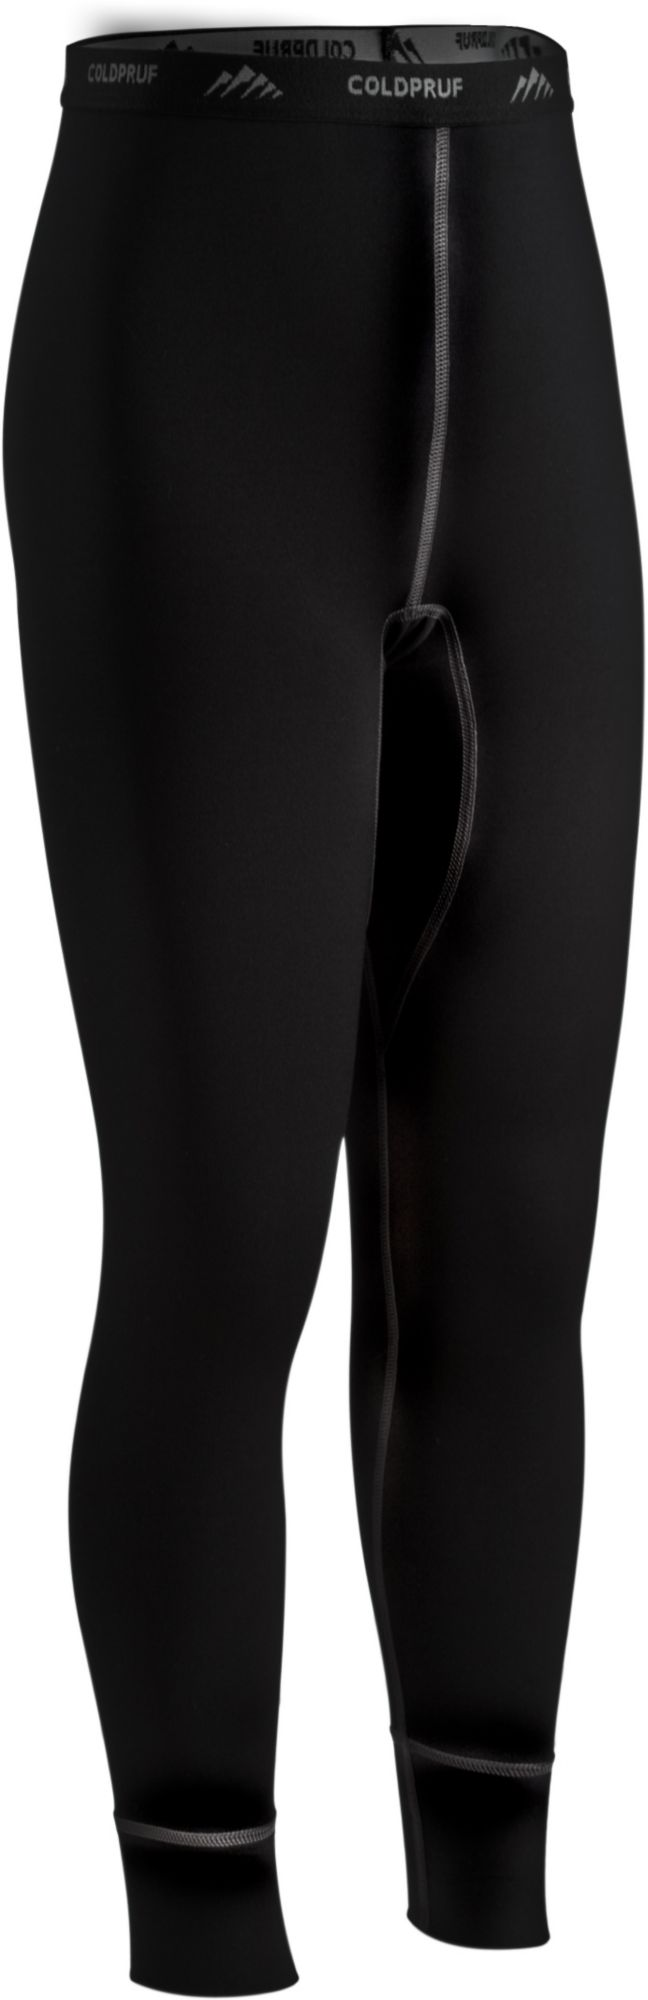 ColdPruf Kids' Quest Performance Base Layer Leggings, Kids Unisex, Size: XS, Black thumbnail